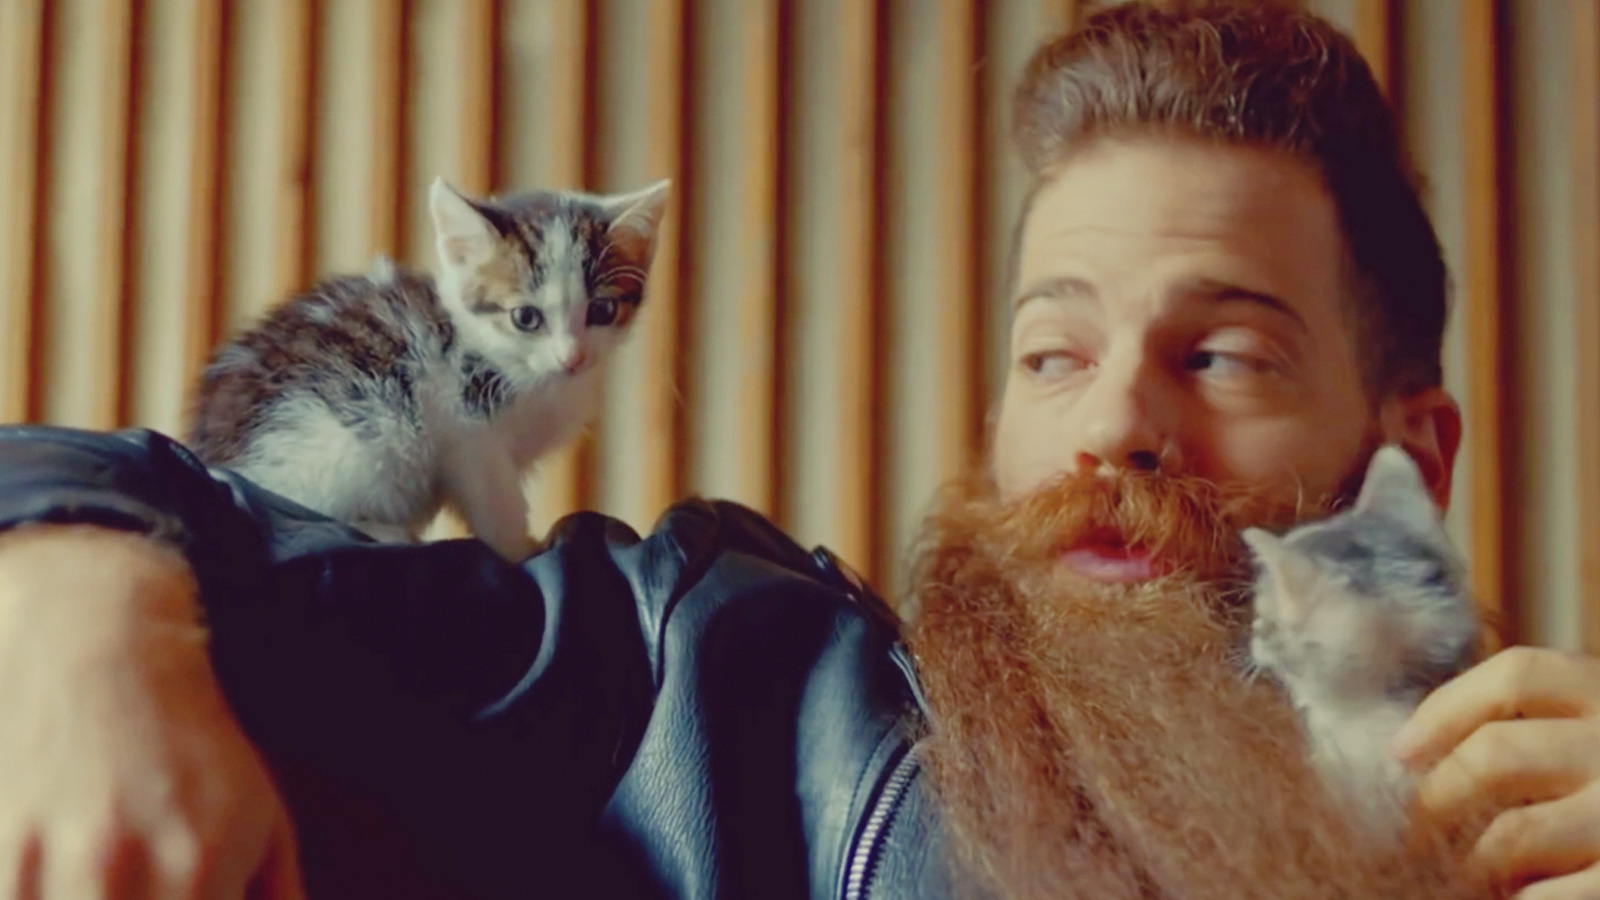 man makeover beard cat